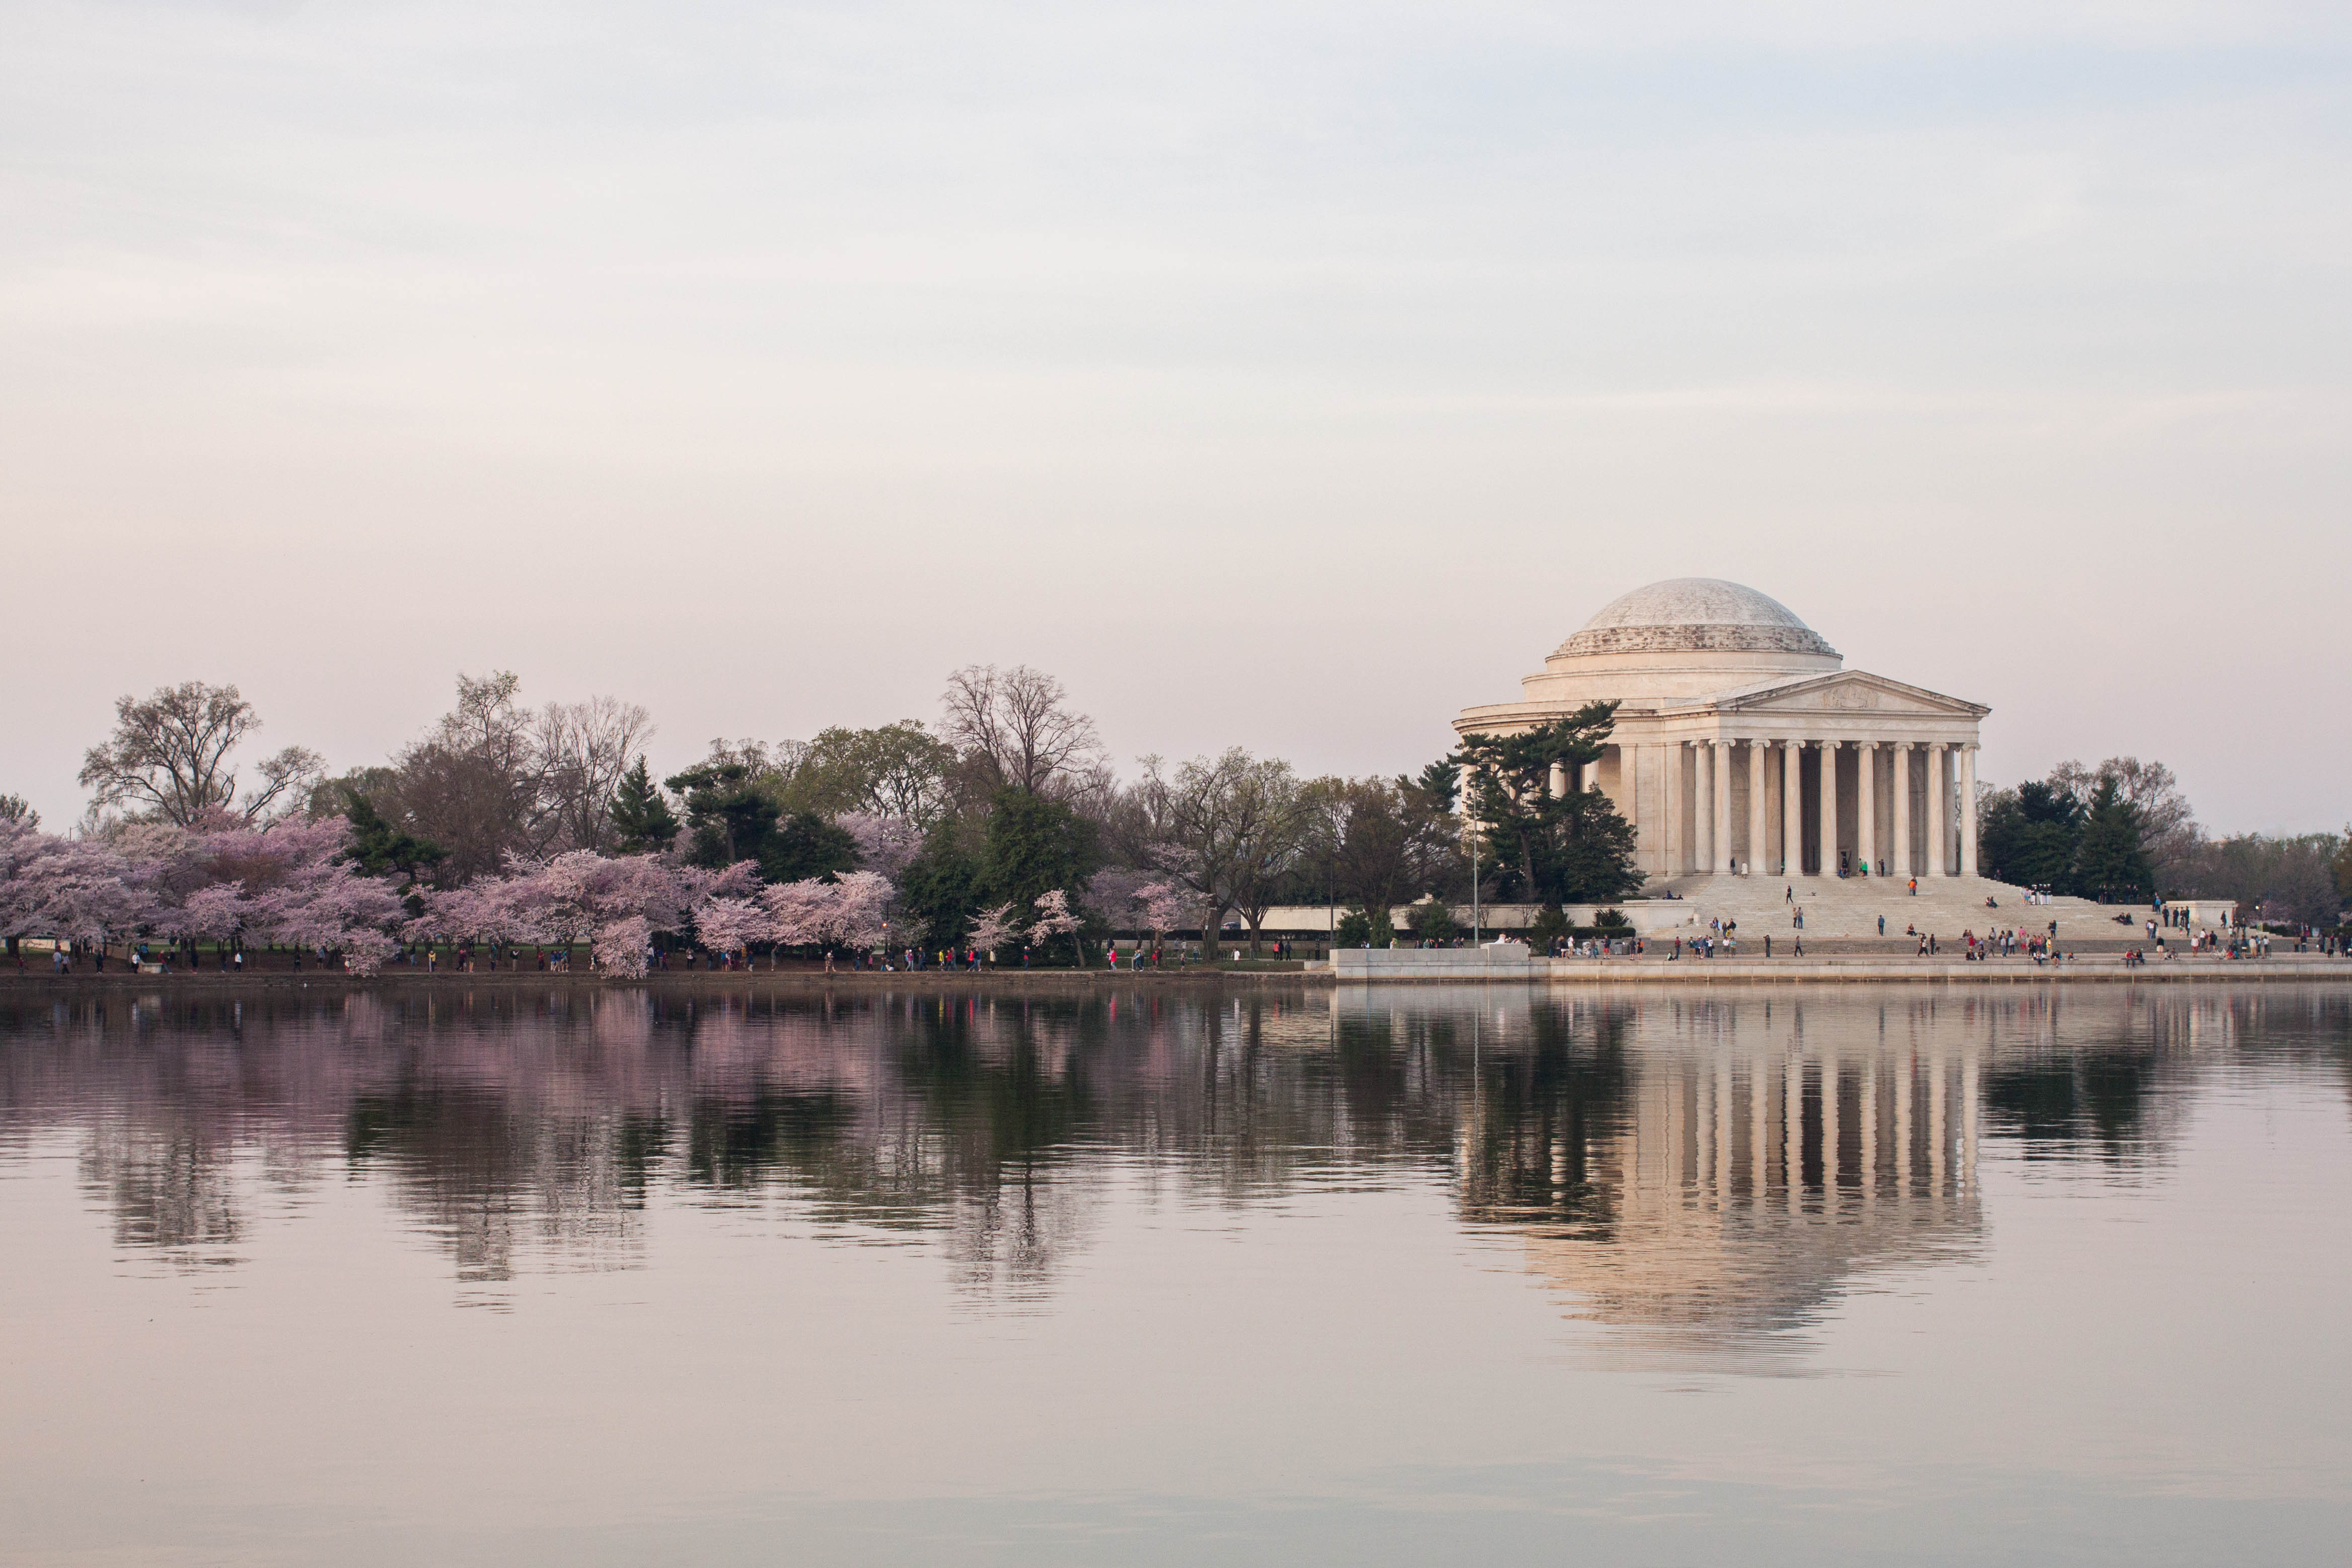 Blooming cherry blossoms surround the Jefferson Memorial in Washington, DC during the Cherry Blossom Festival.